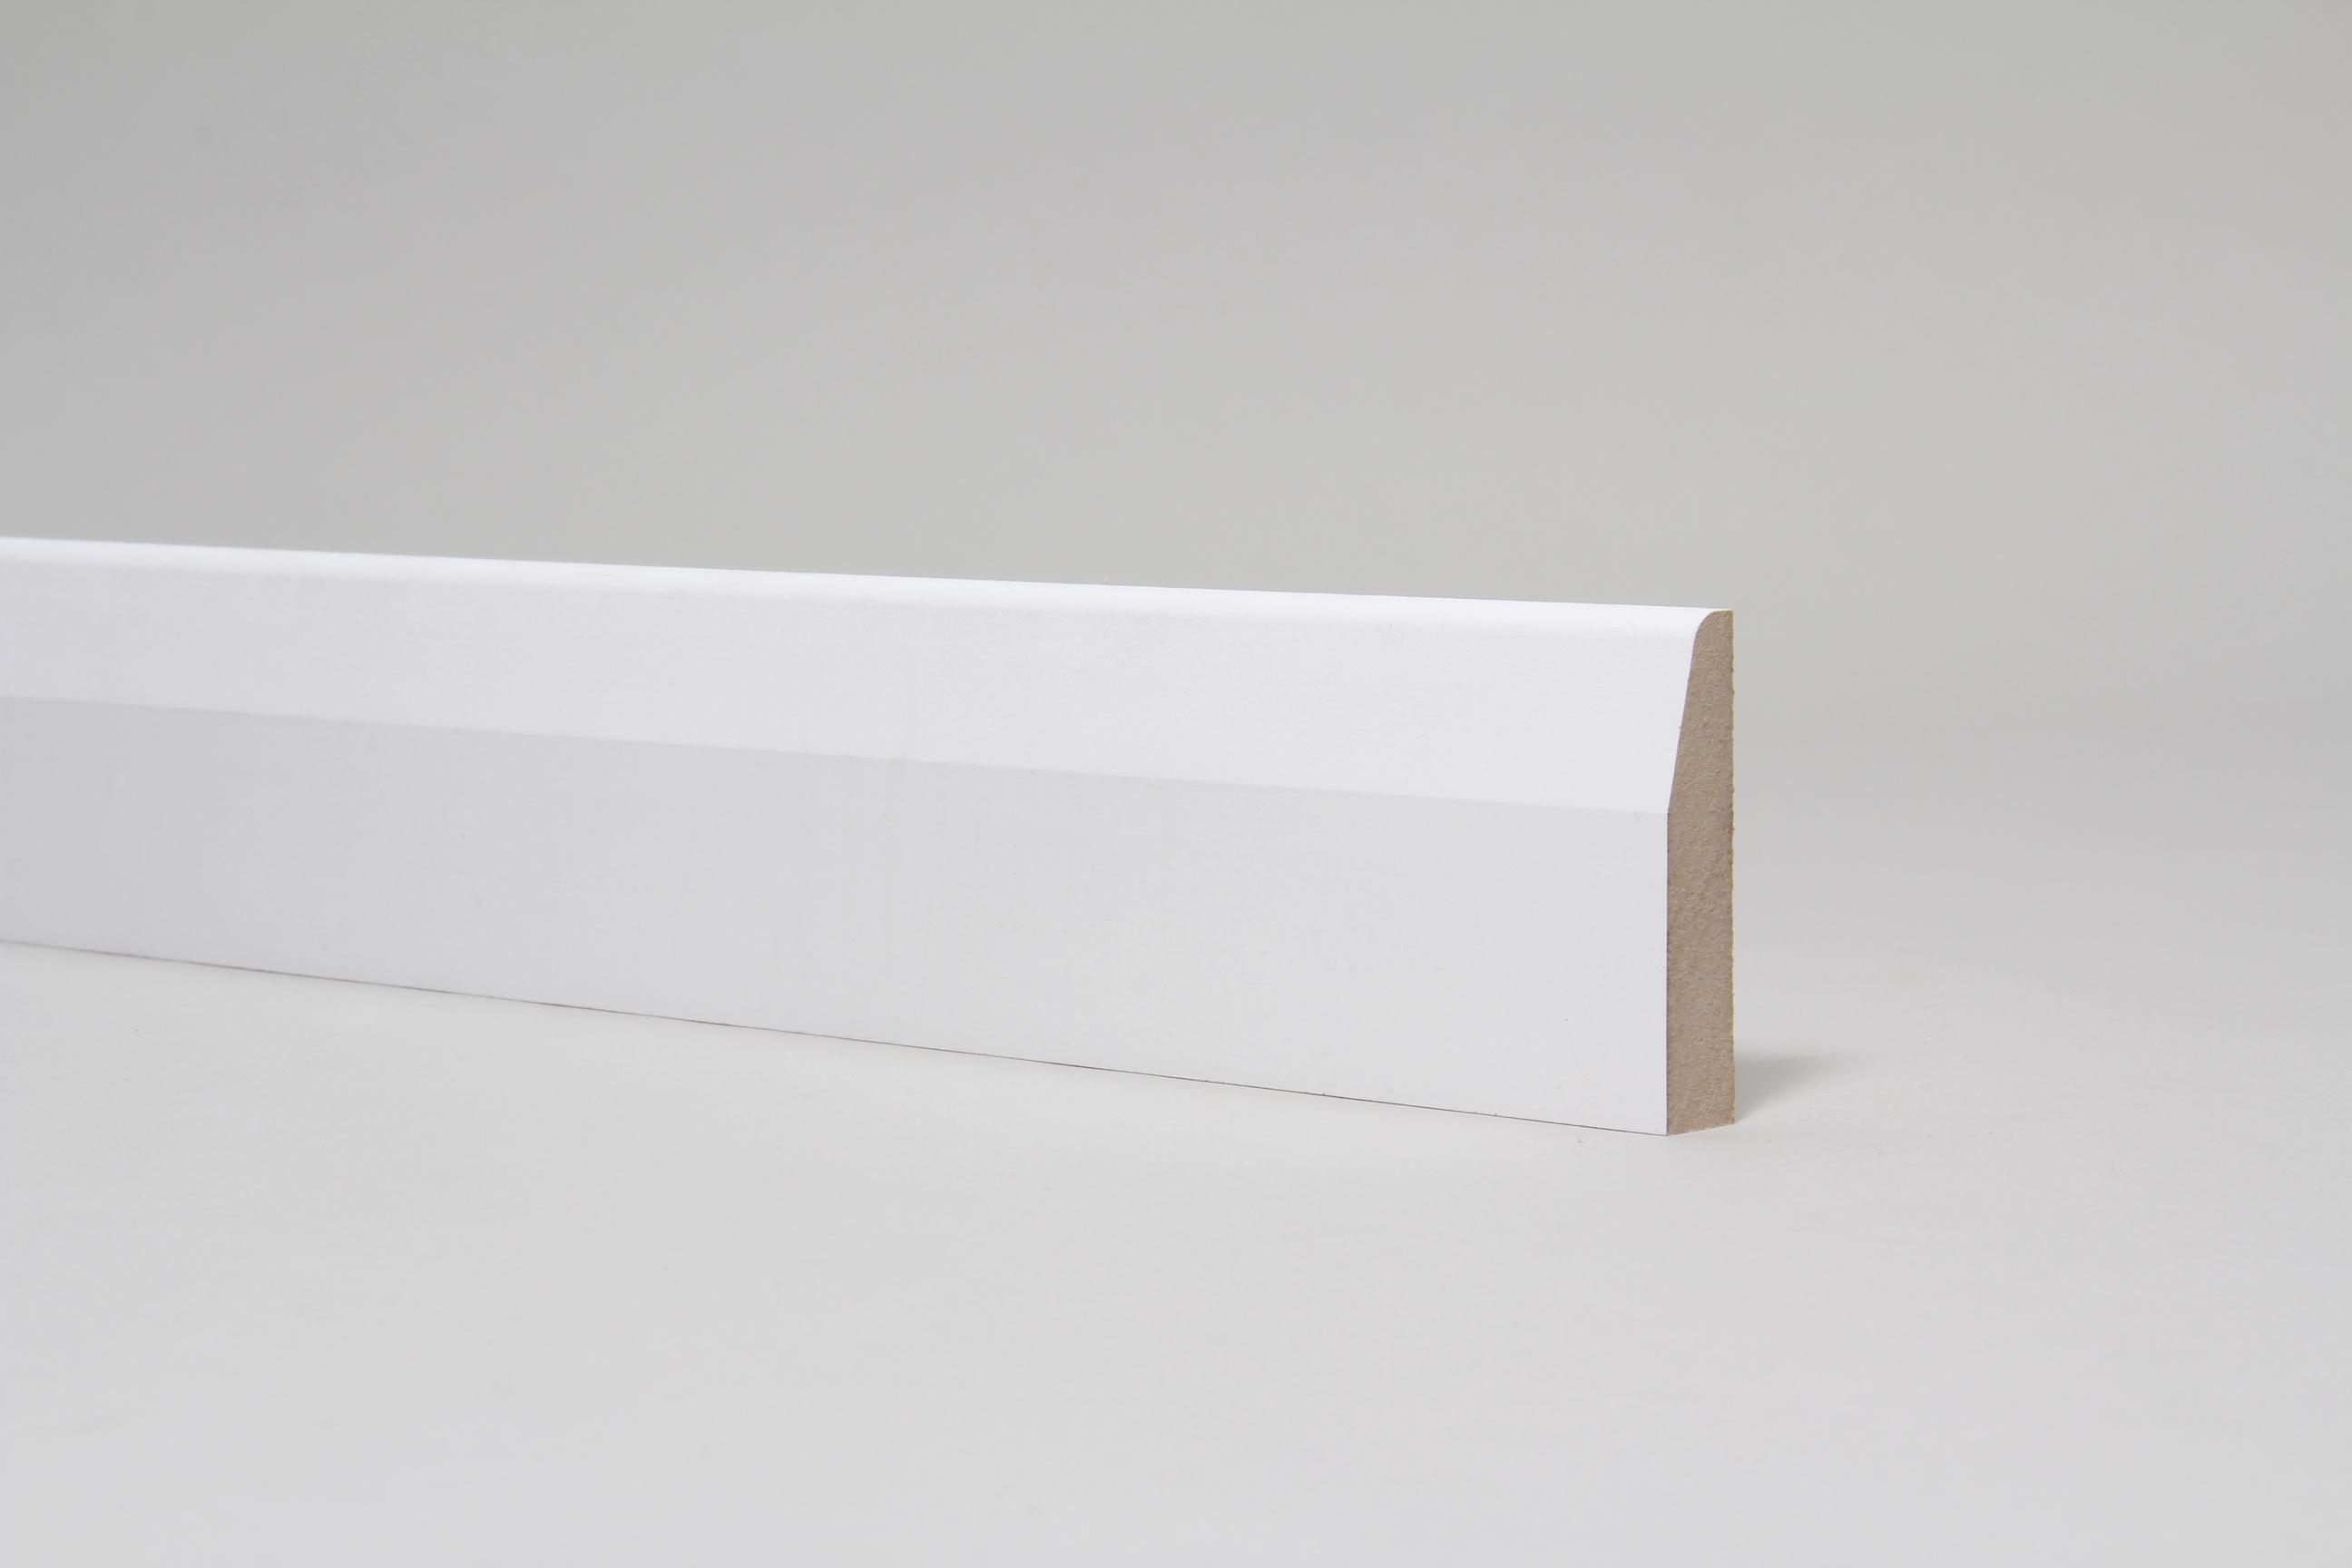 Chamfered & Rounded 15mm x 68mm Architrave Set Primed